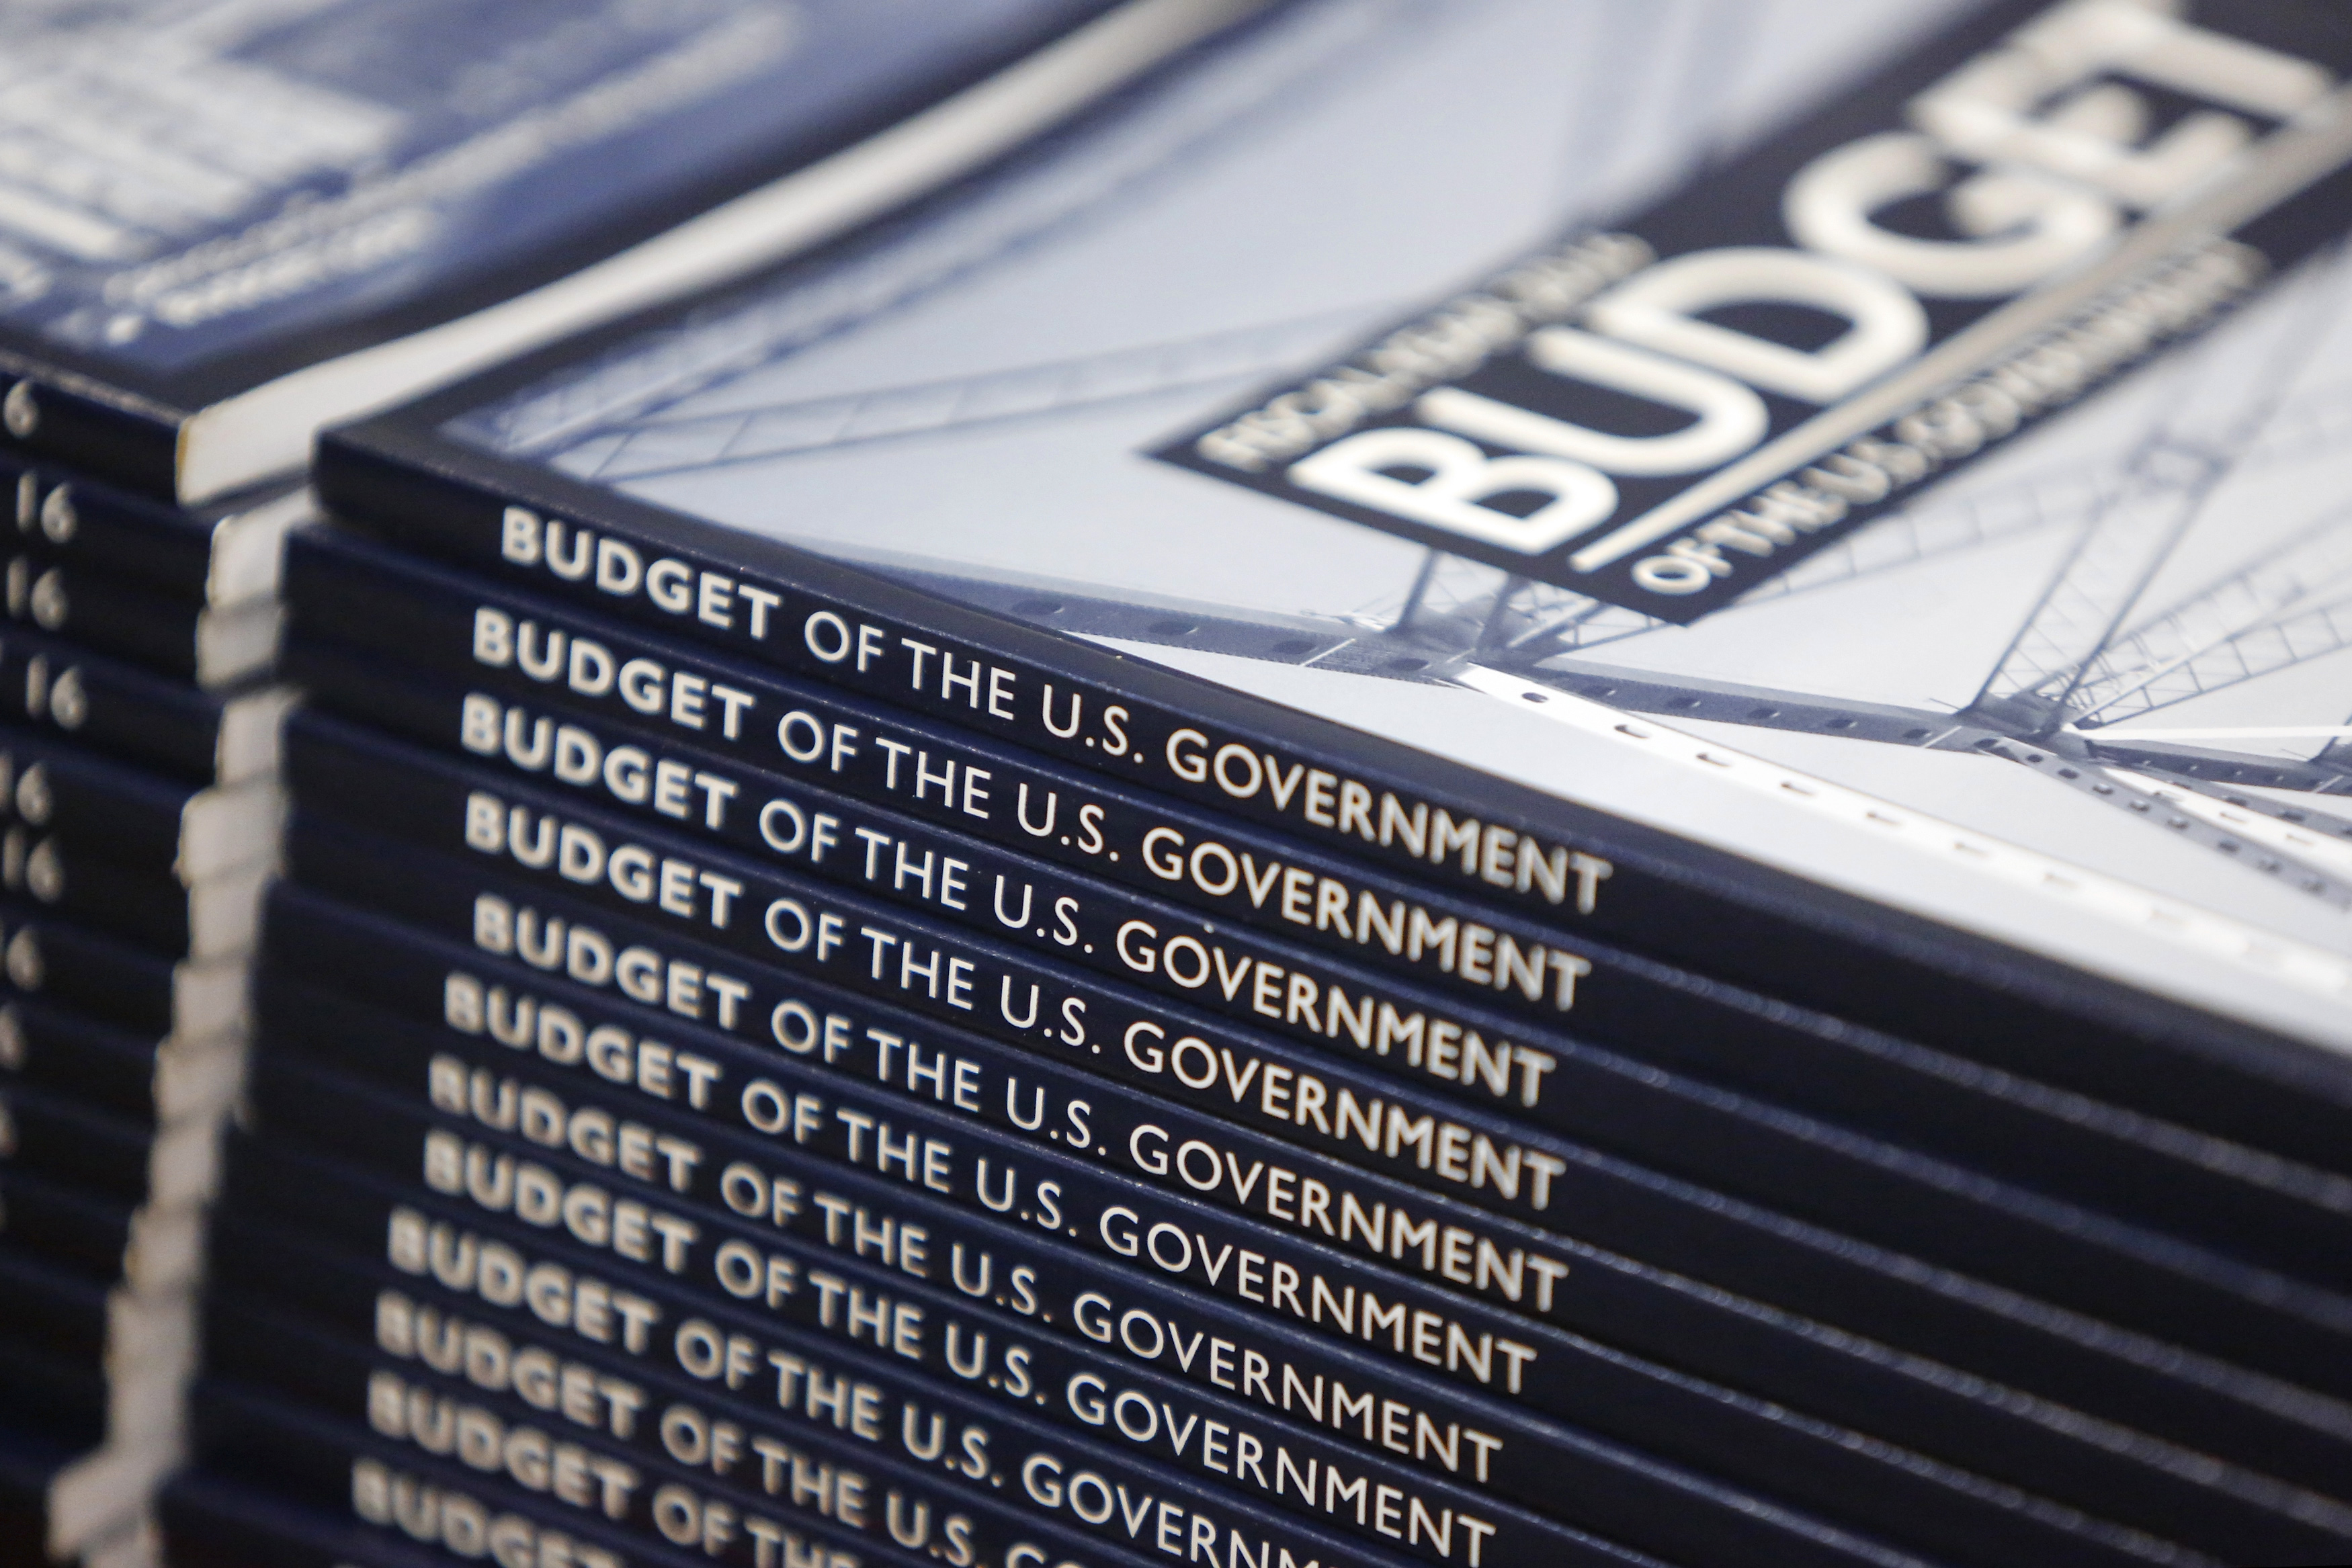 What's wrong with the congressional budget process?